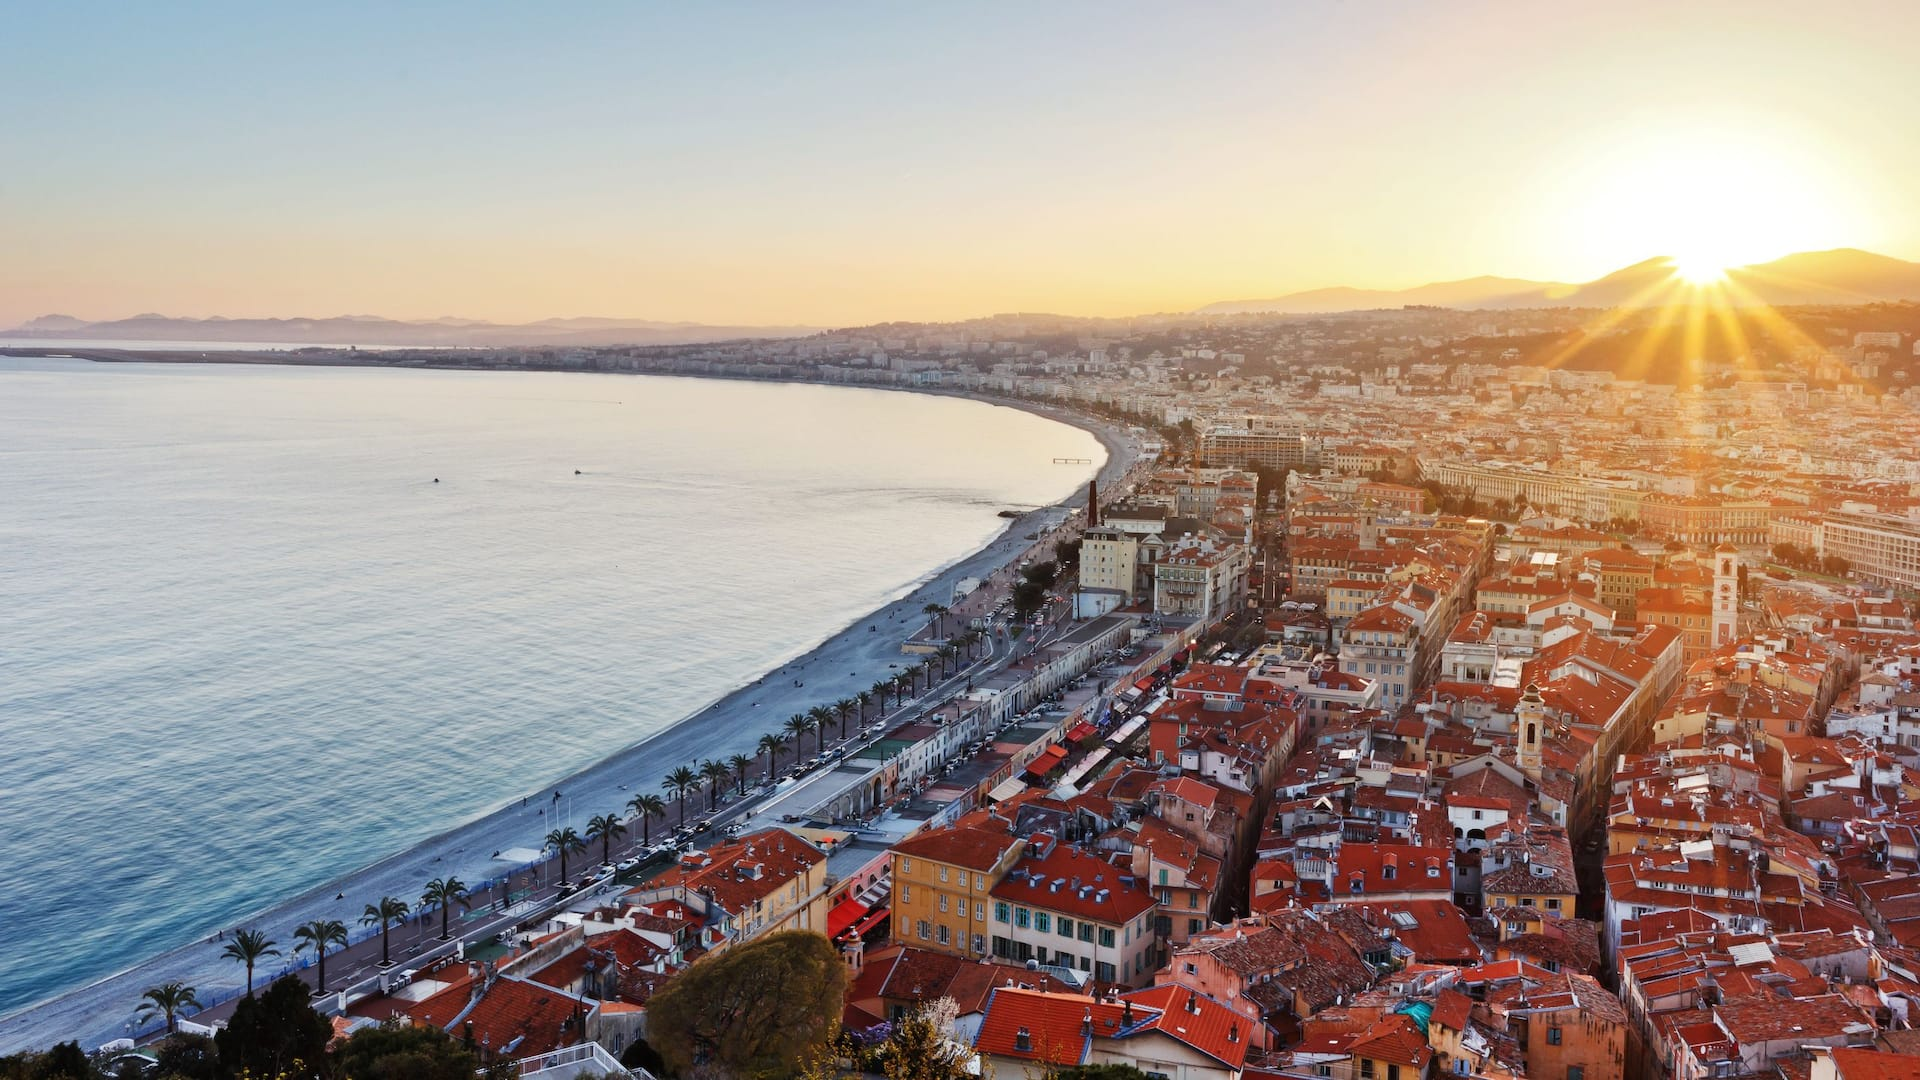 Hotel Hyatt Regency Nice – Sunset on the Promenade des Anglais